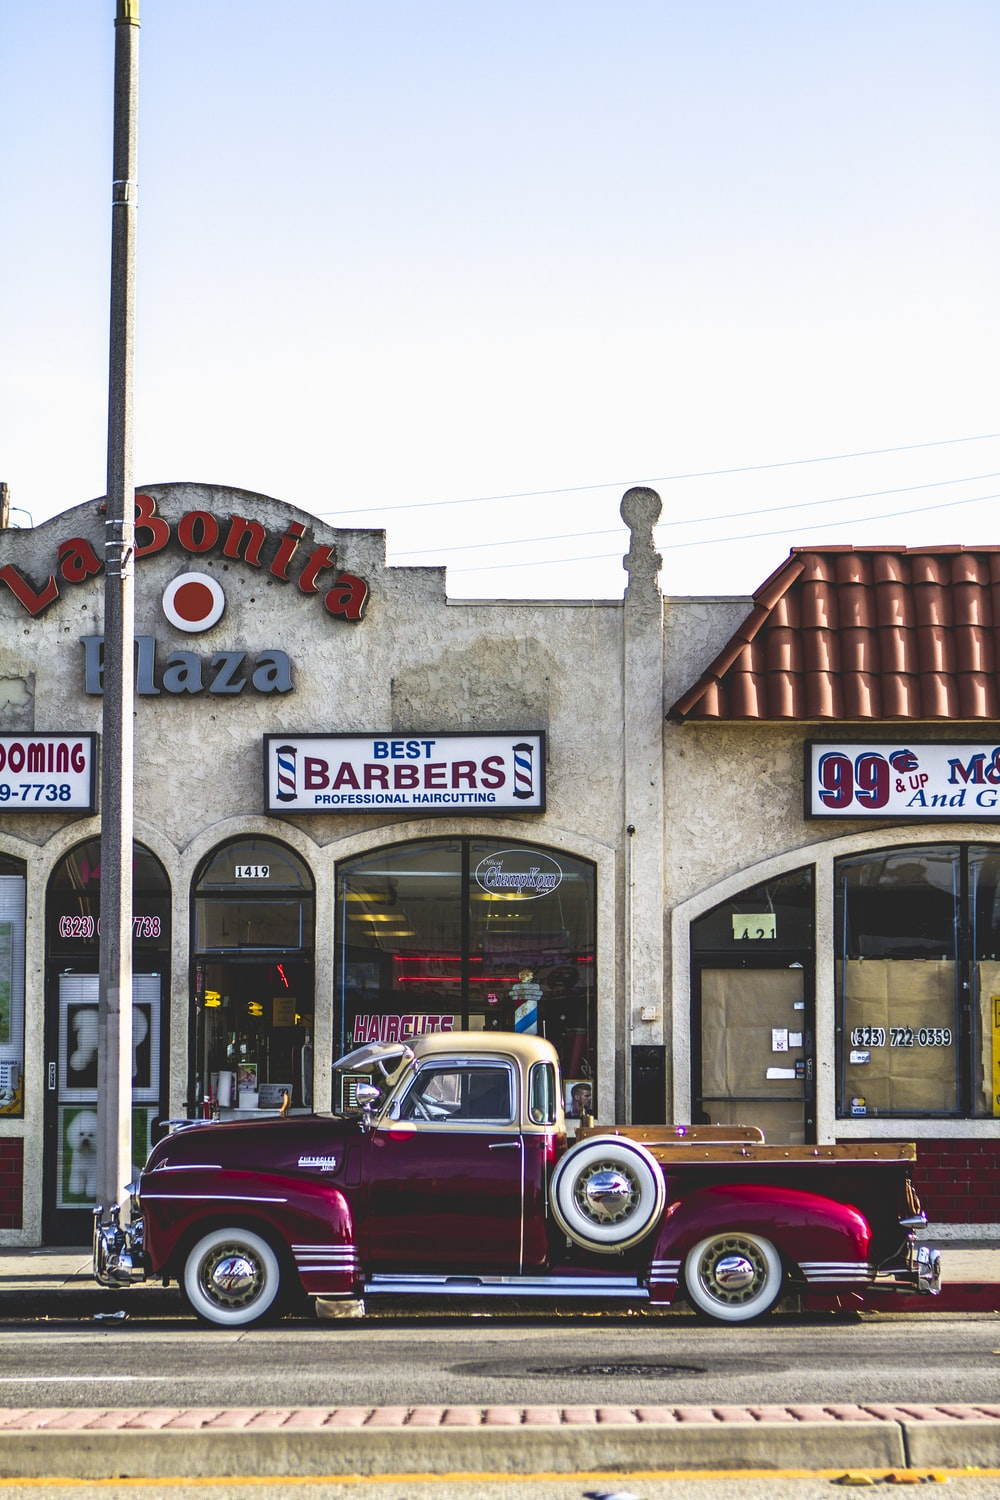 classic red coupe parked beside barber store facade